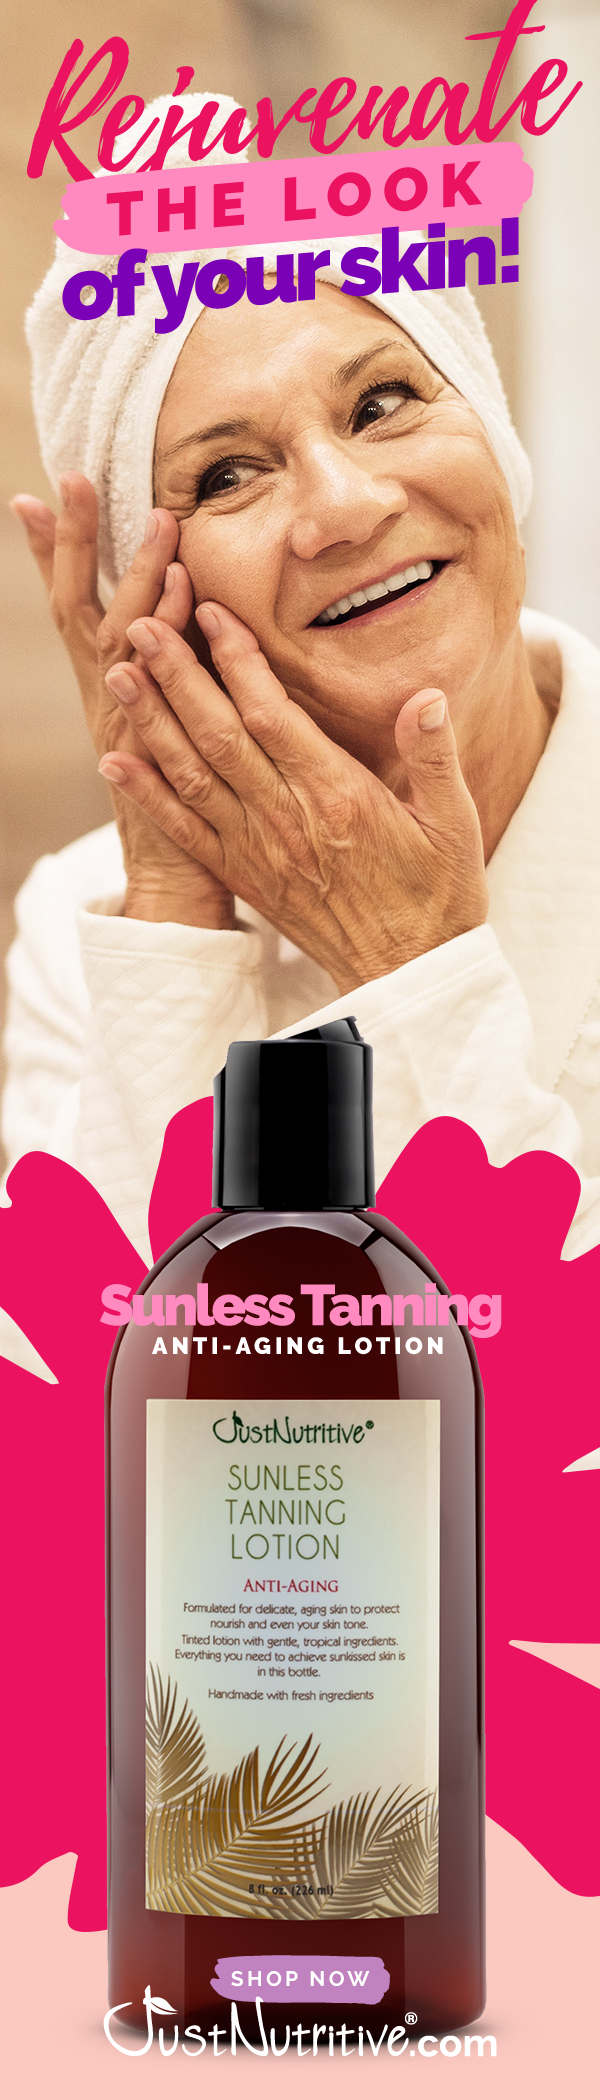 Sunless Tanning AntiAging Best tanning lotion, Anti